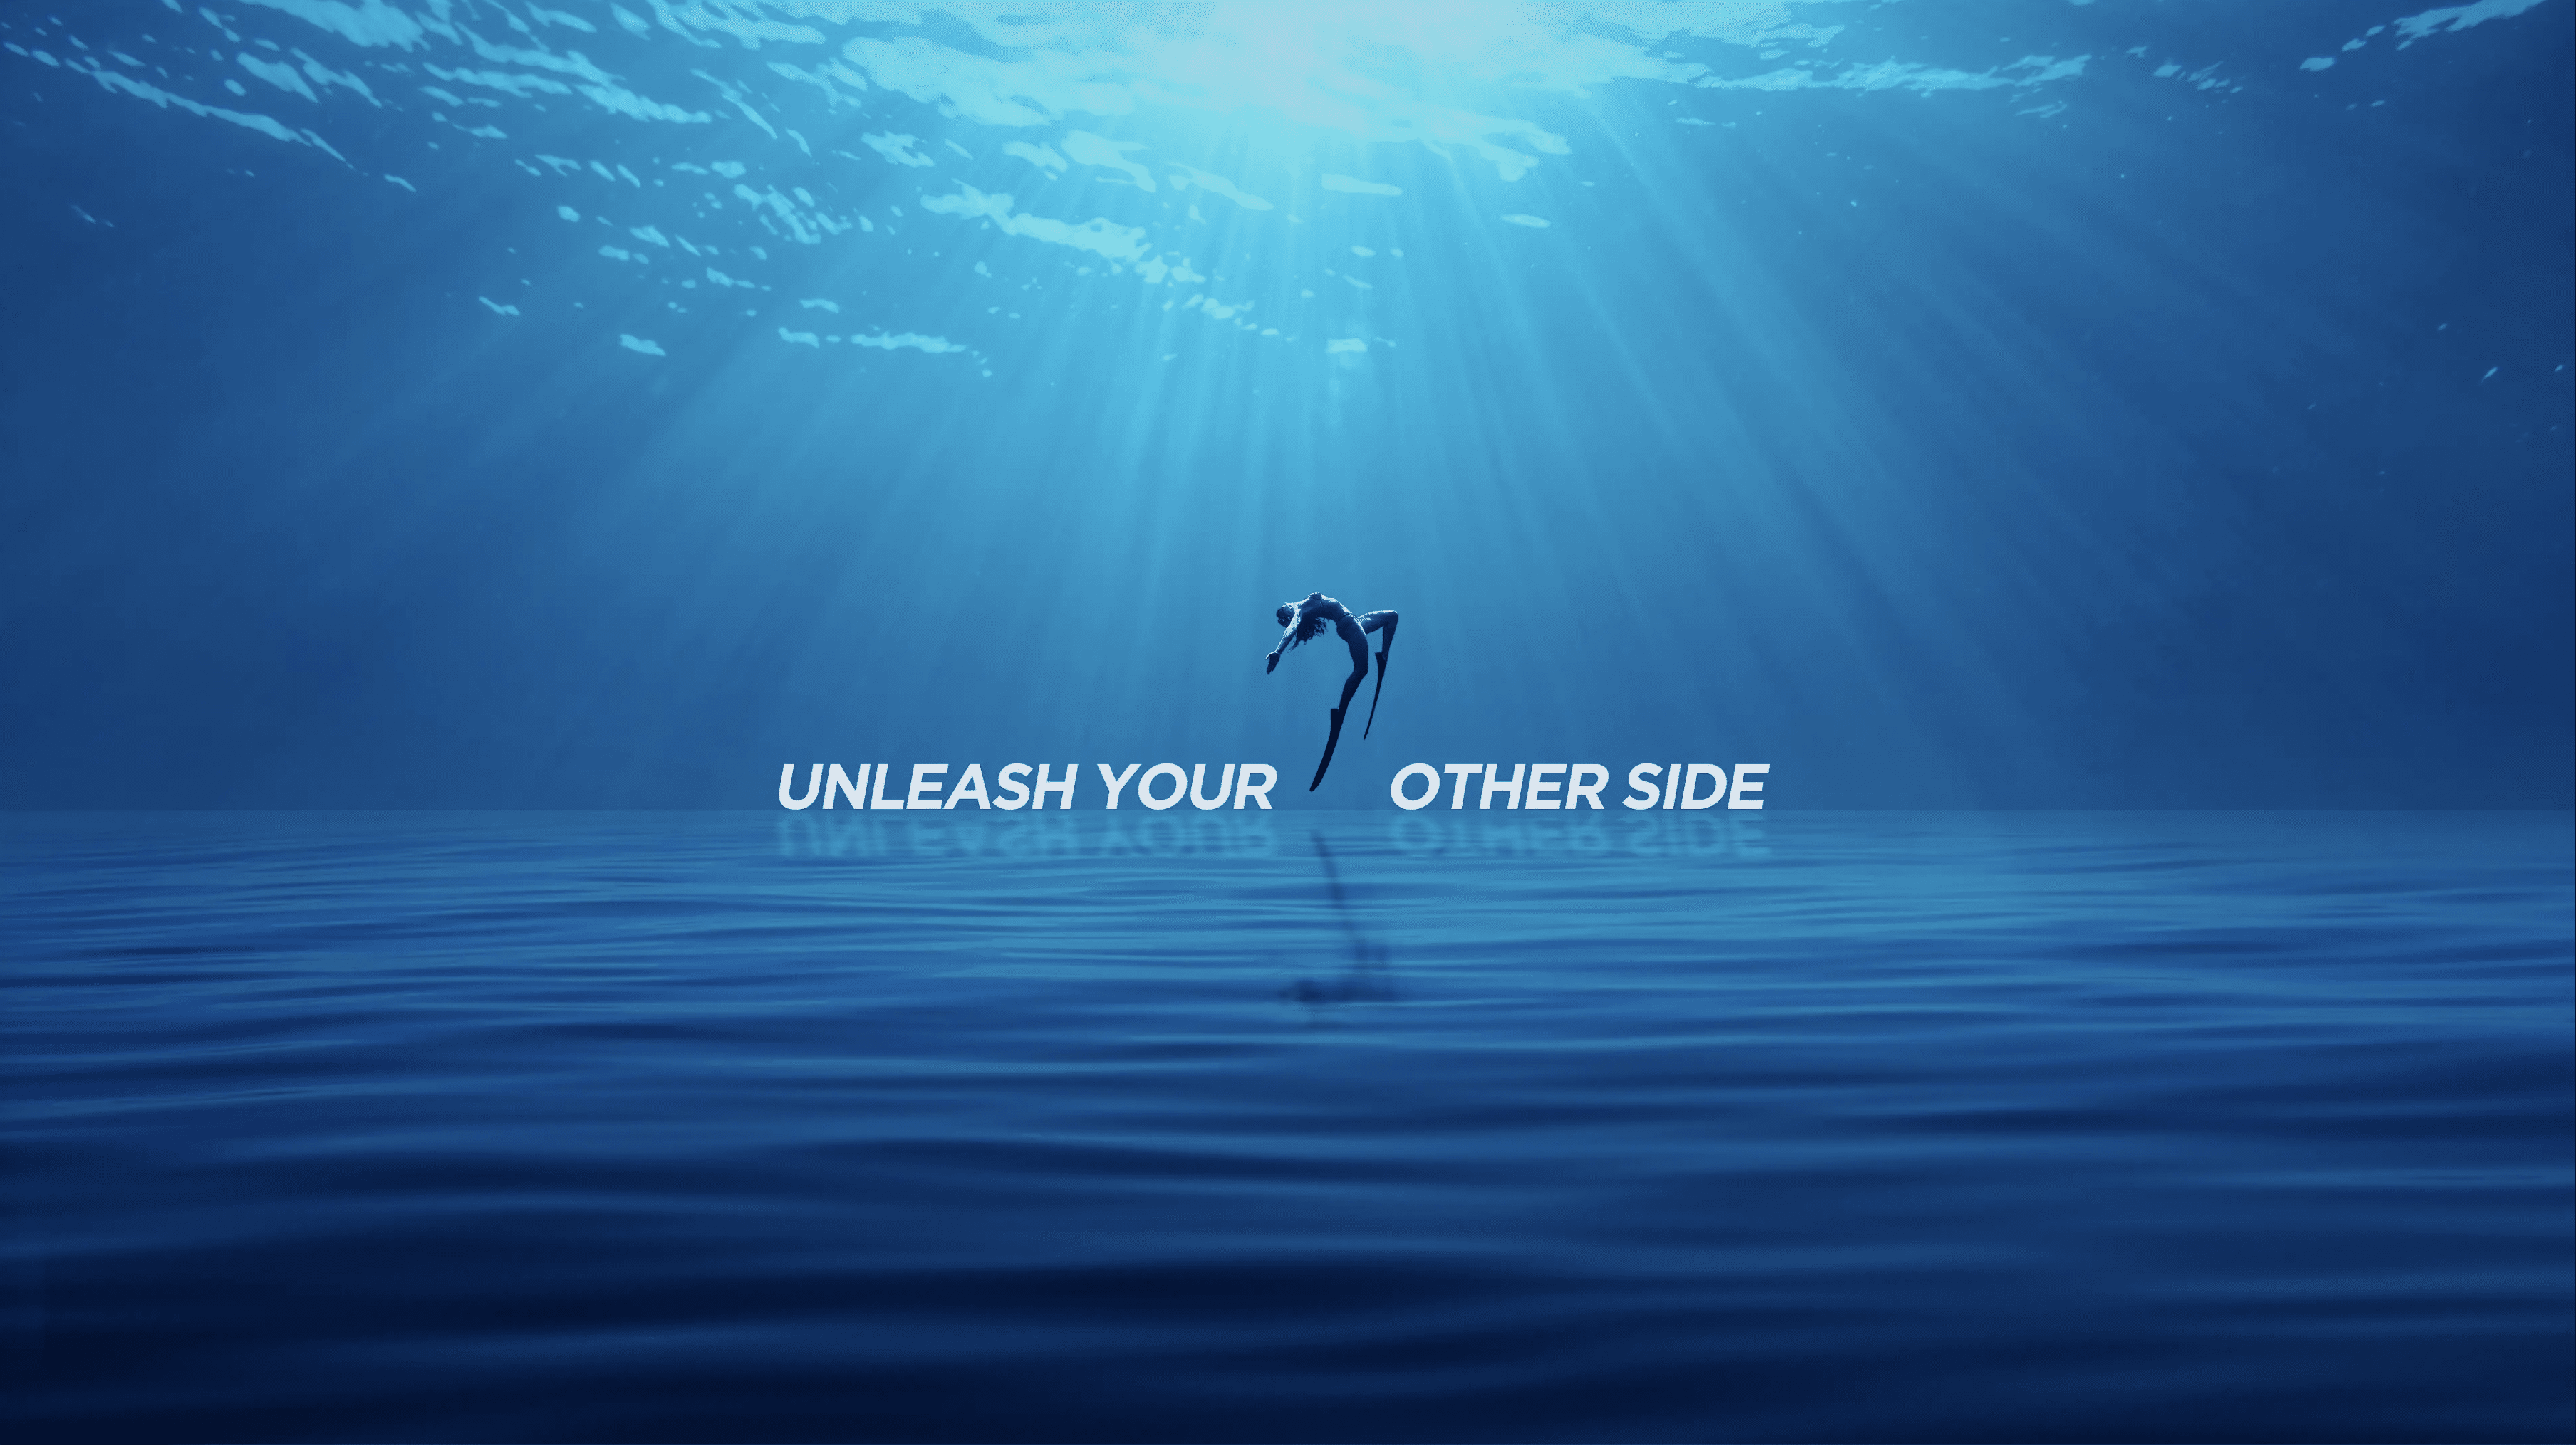 Unleash Your Other Side DJI Teaser